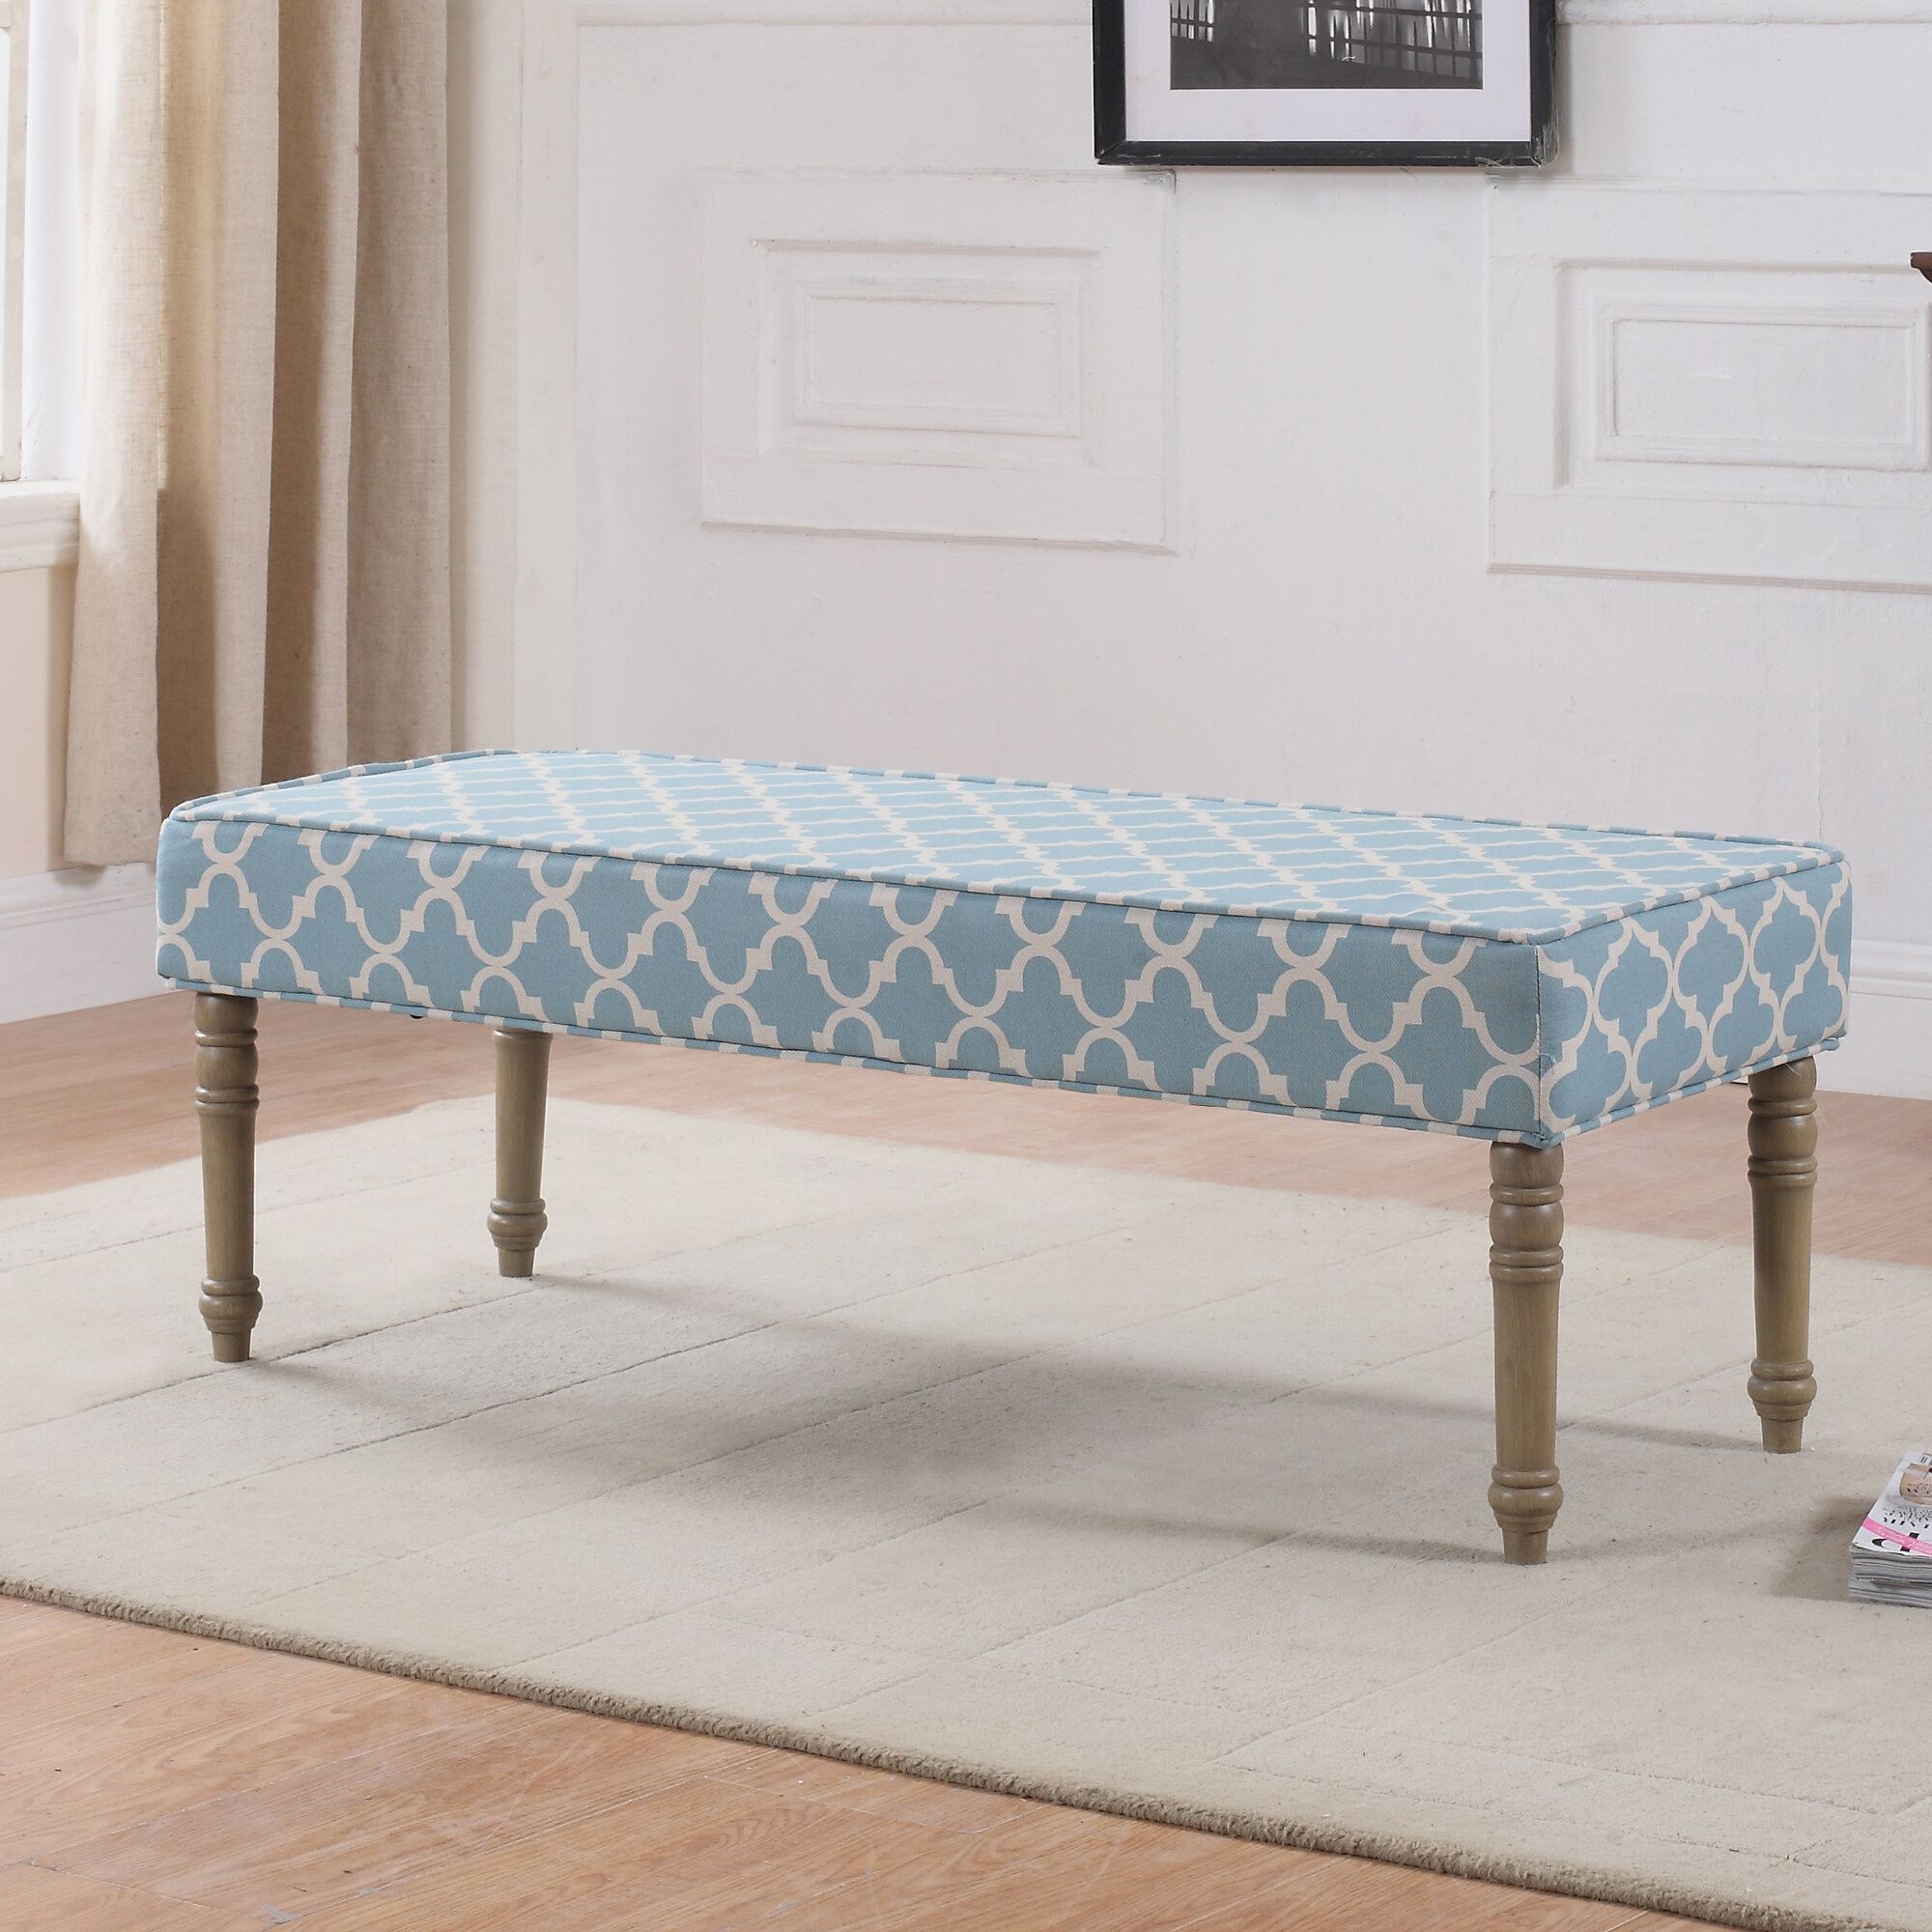 upholstered bedroom bench bestmasterfurniture upholstered bedroom bench ebay 13695